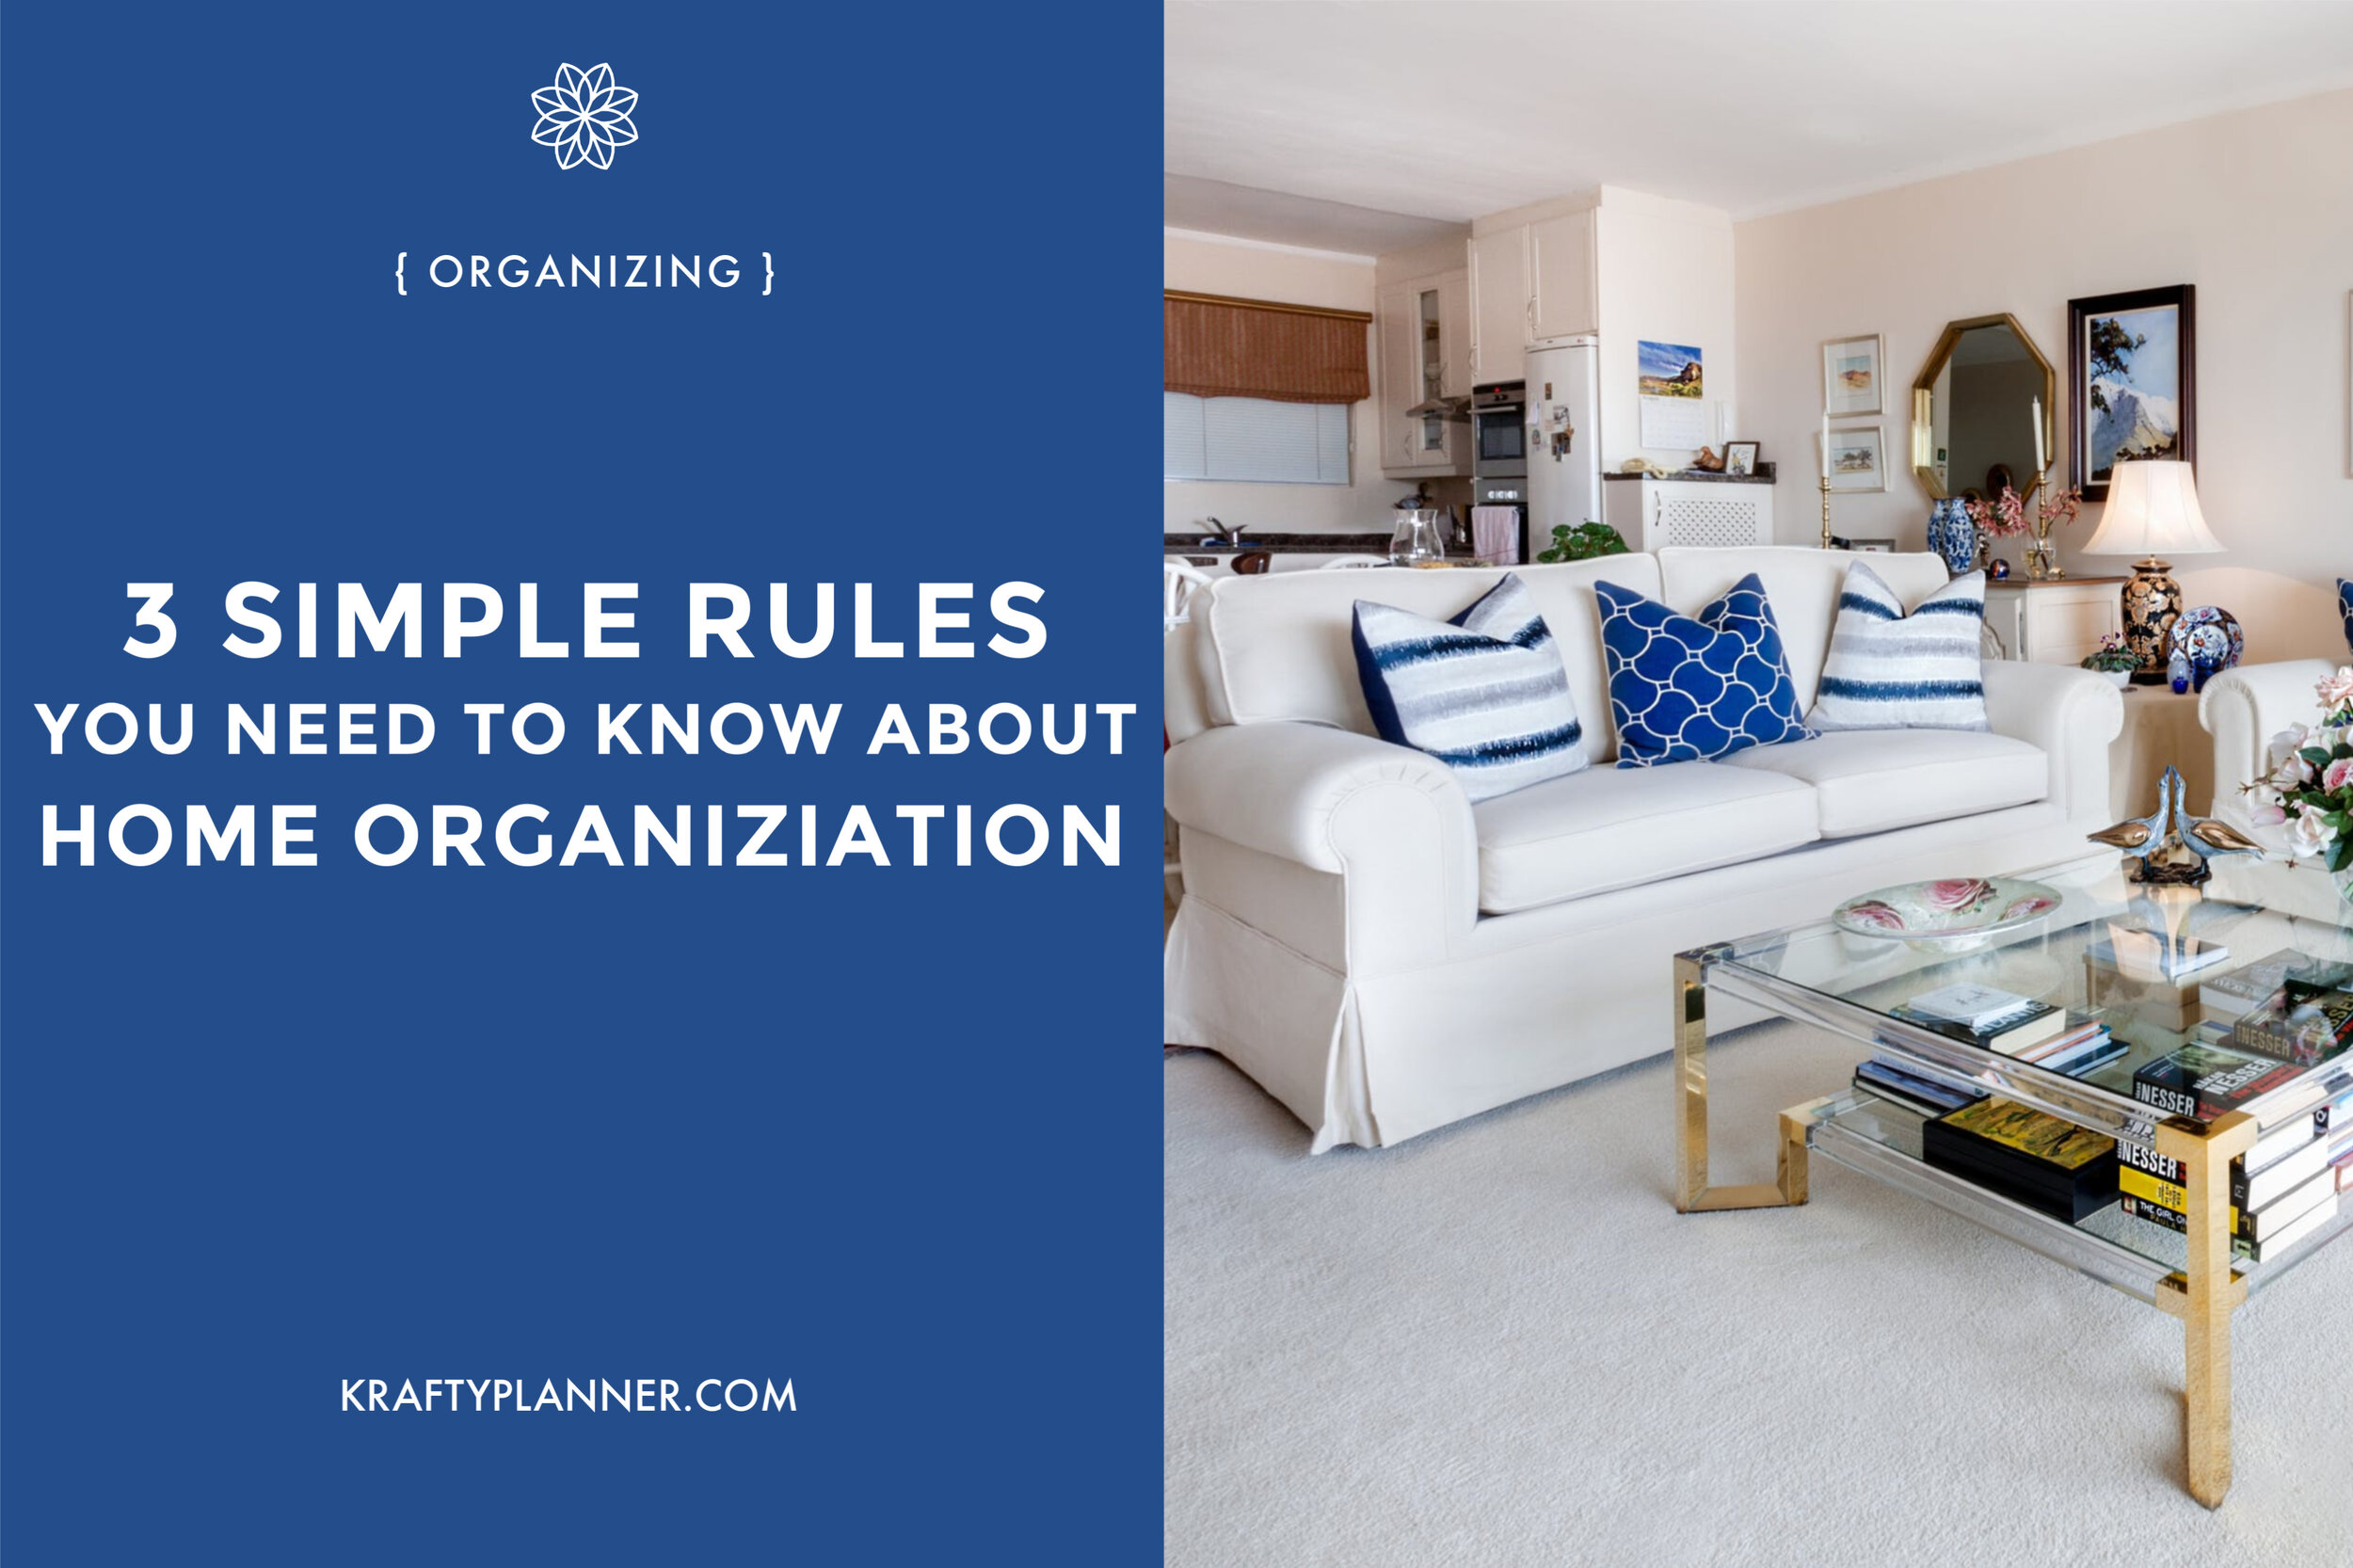 3 Simple Rules You Need to Know About Home Organization